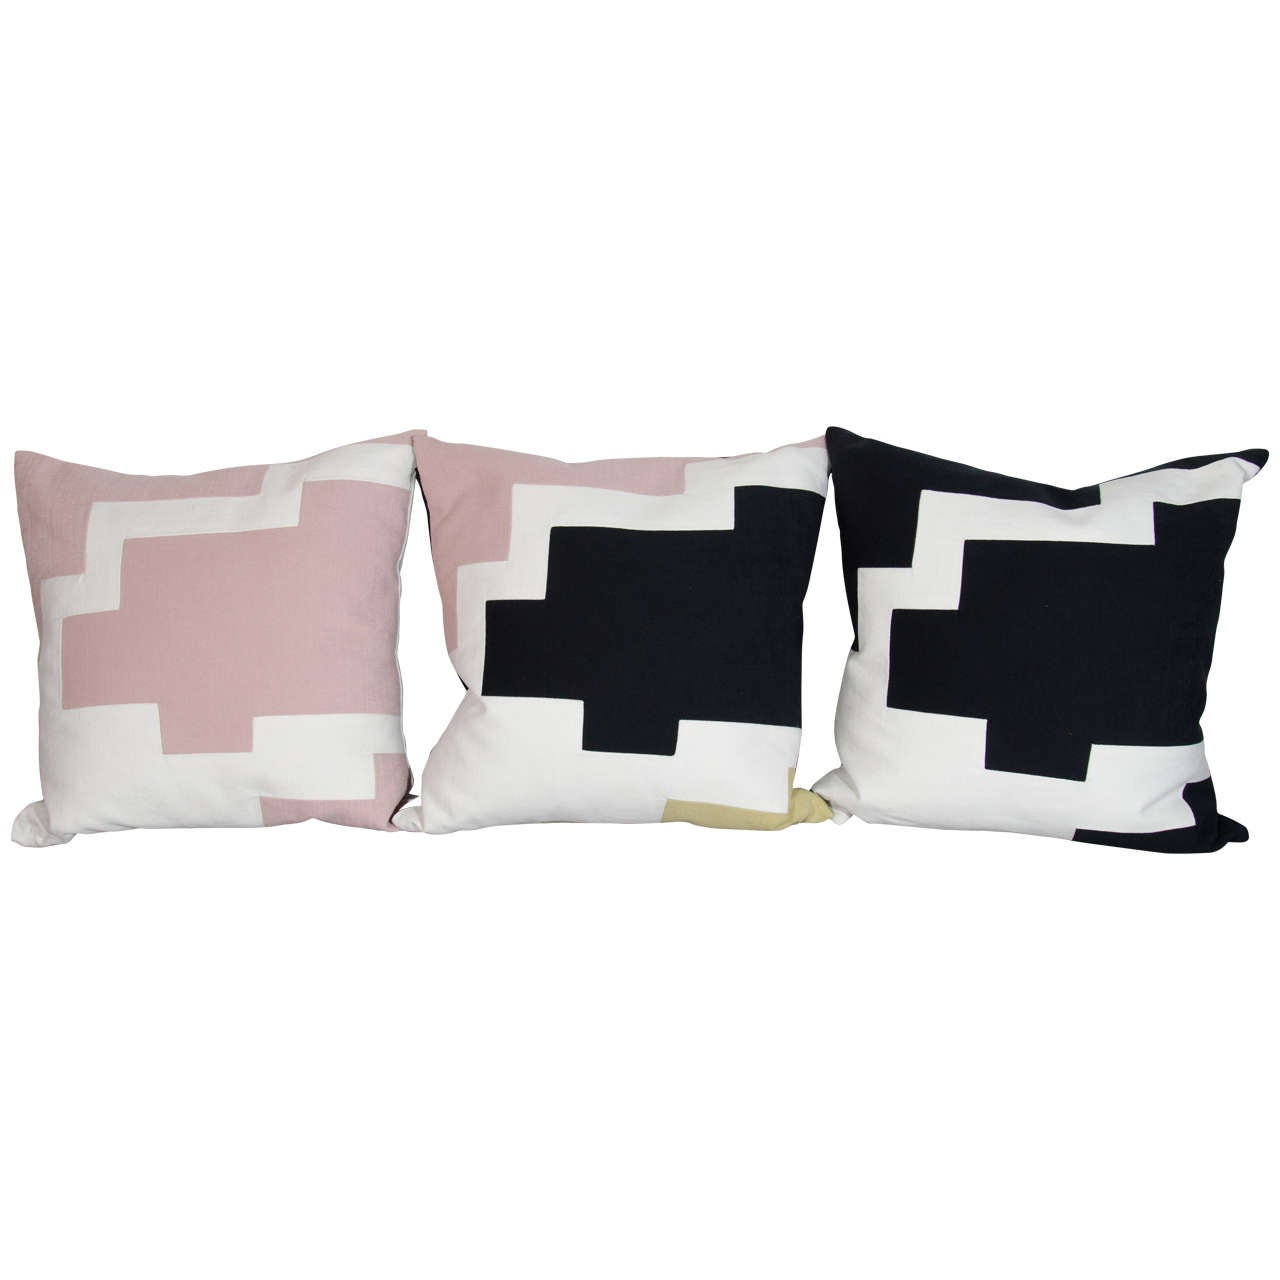 Couture throw pillows by Arguello Casa with abstract designs, inspired by the architectural skyline of New York City.  Individually handcrafted in New York, culminating in day long stitching process, and using the finest of Italian linens.  In hues